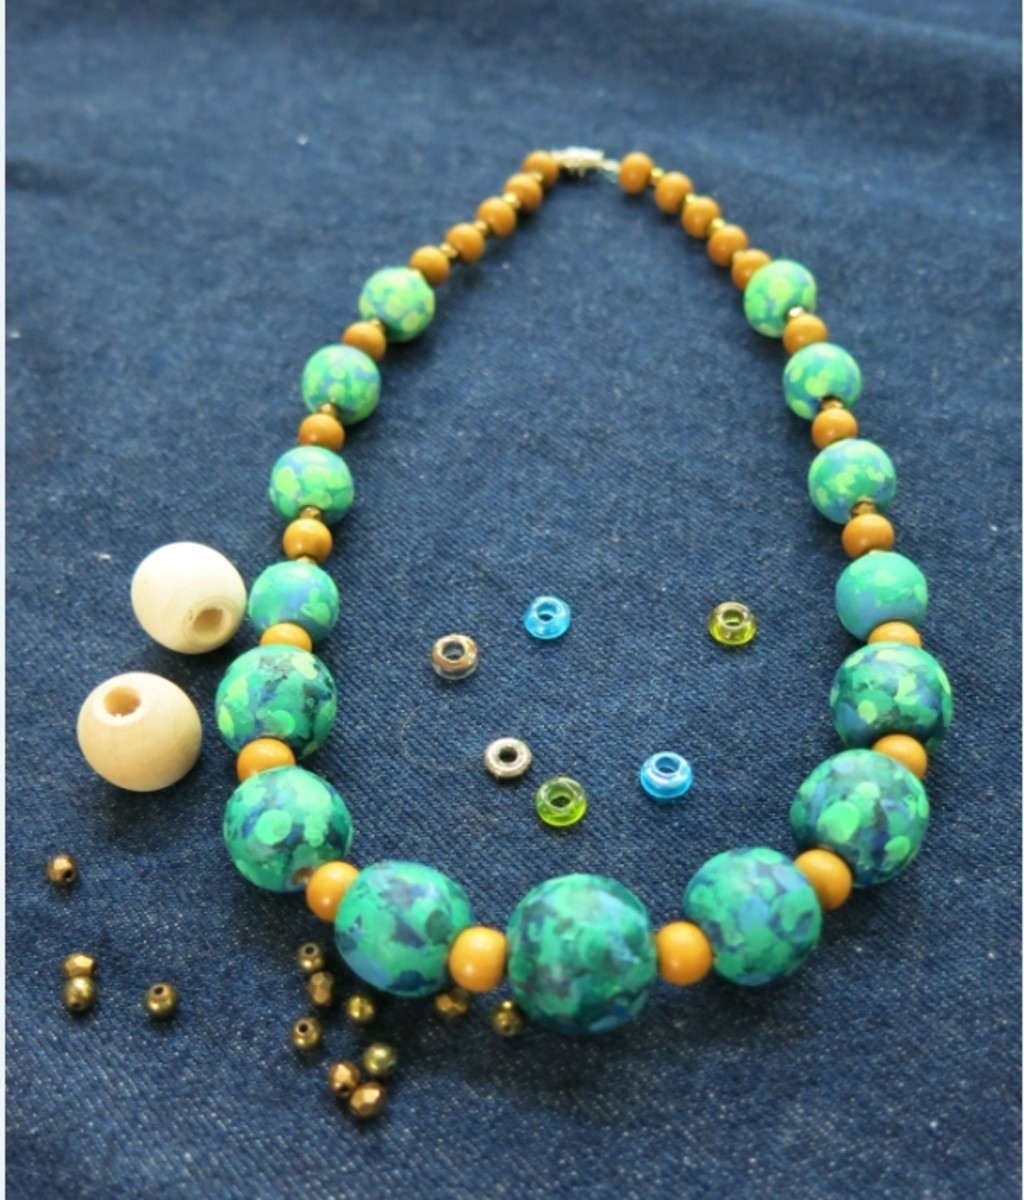 Adding extra beads to make a unique hand painted necklace